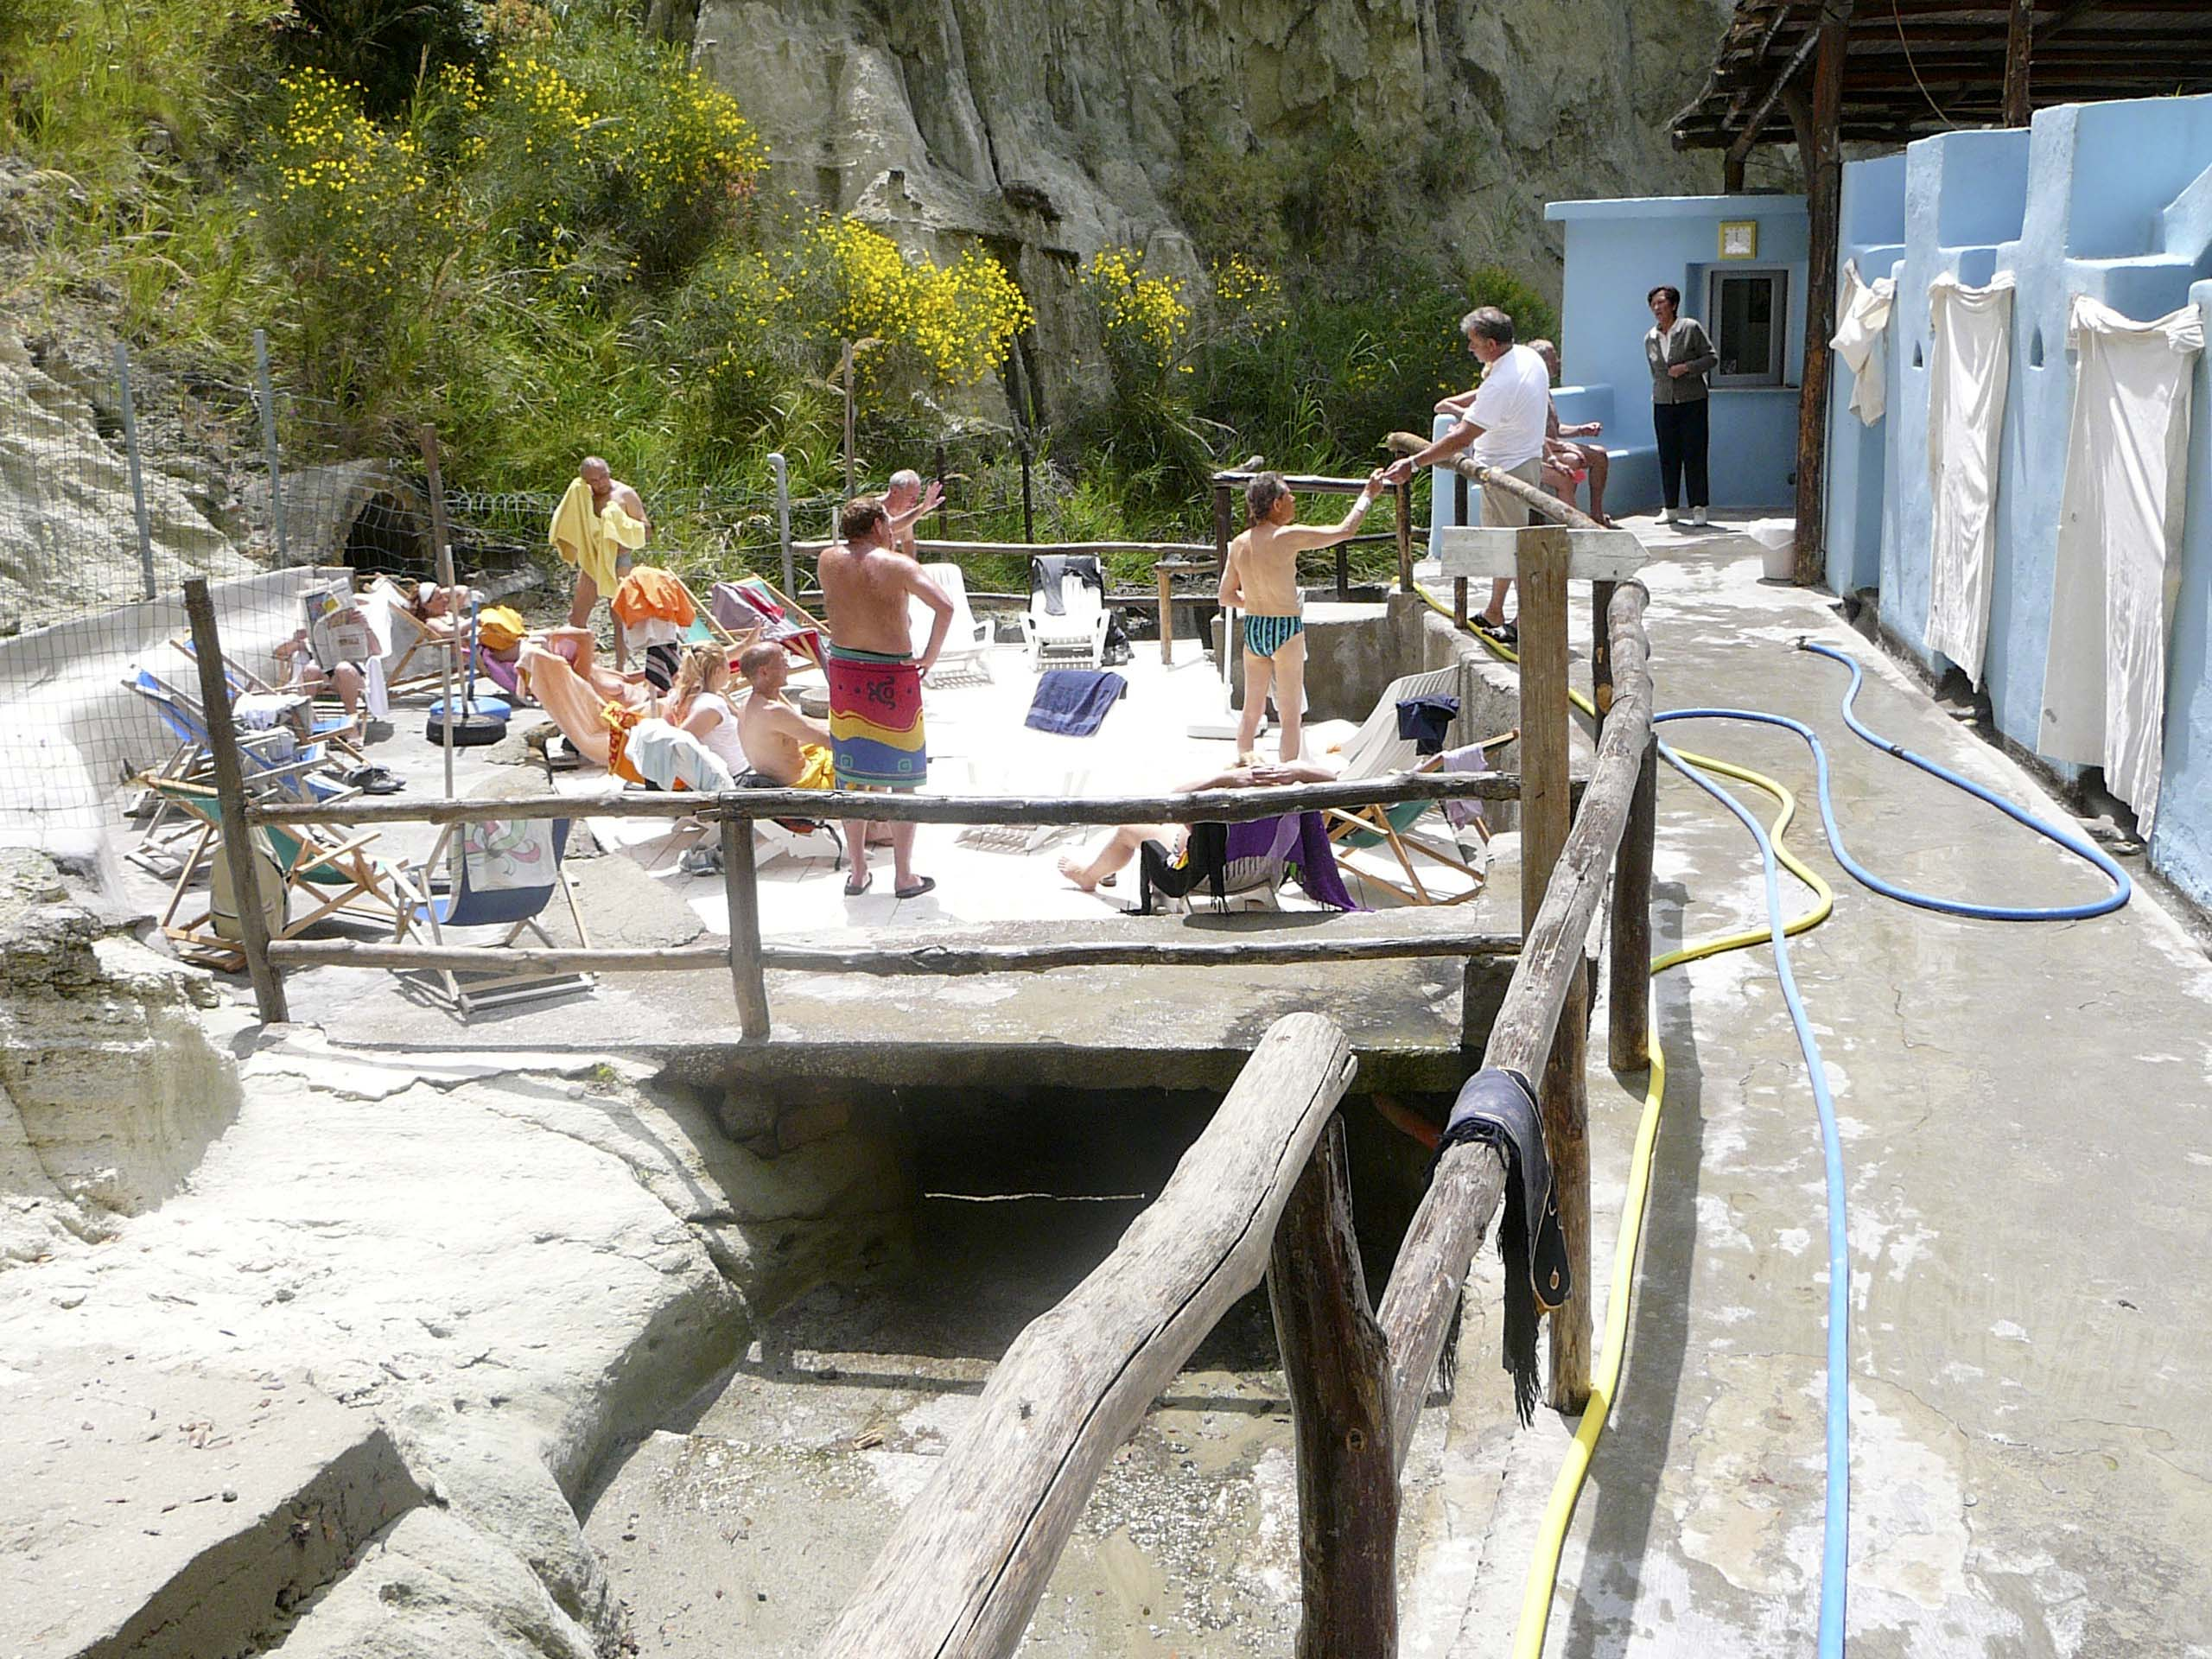 Ischia. Thermalbad in Thermalpark